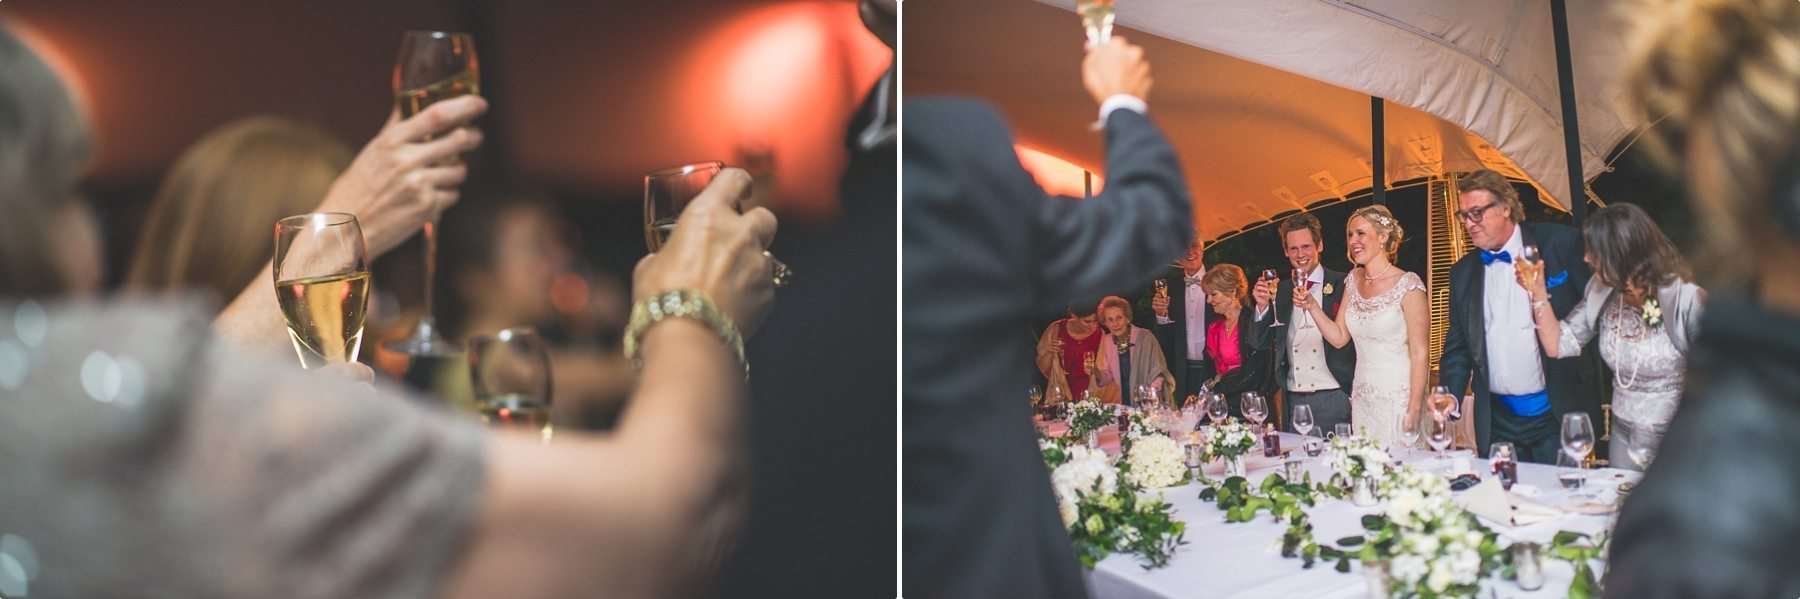 Wedding guests toasting the bride and groom at their coworth park barn summer wedding